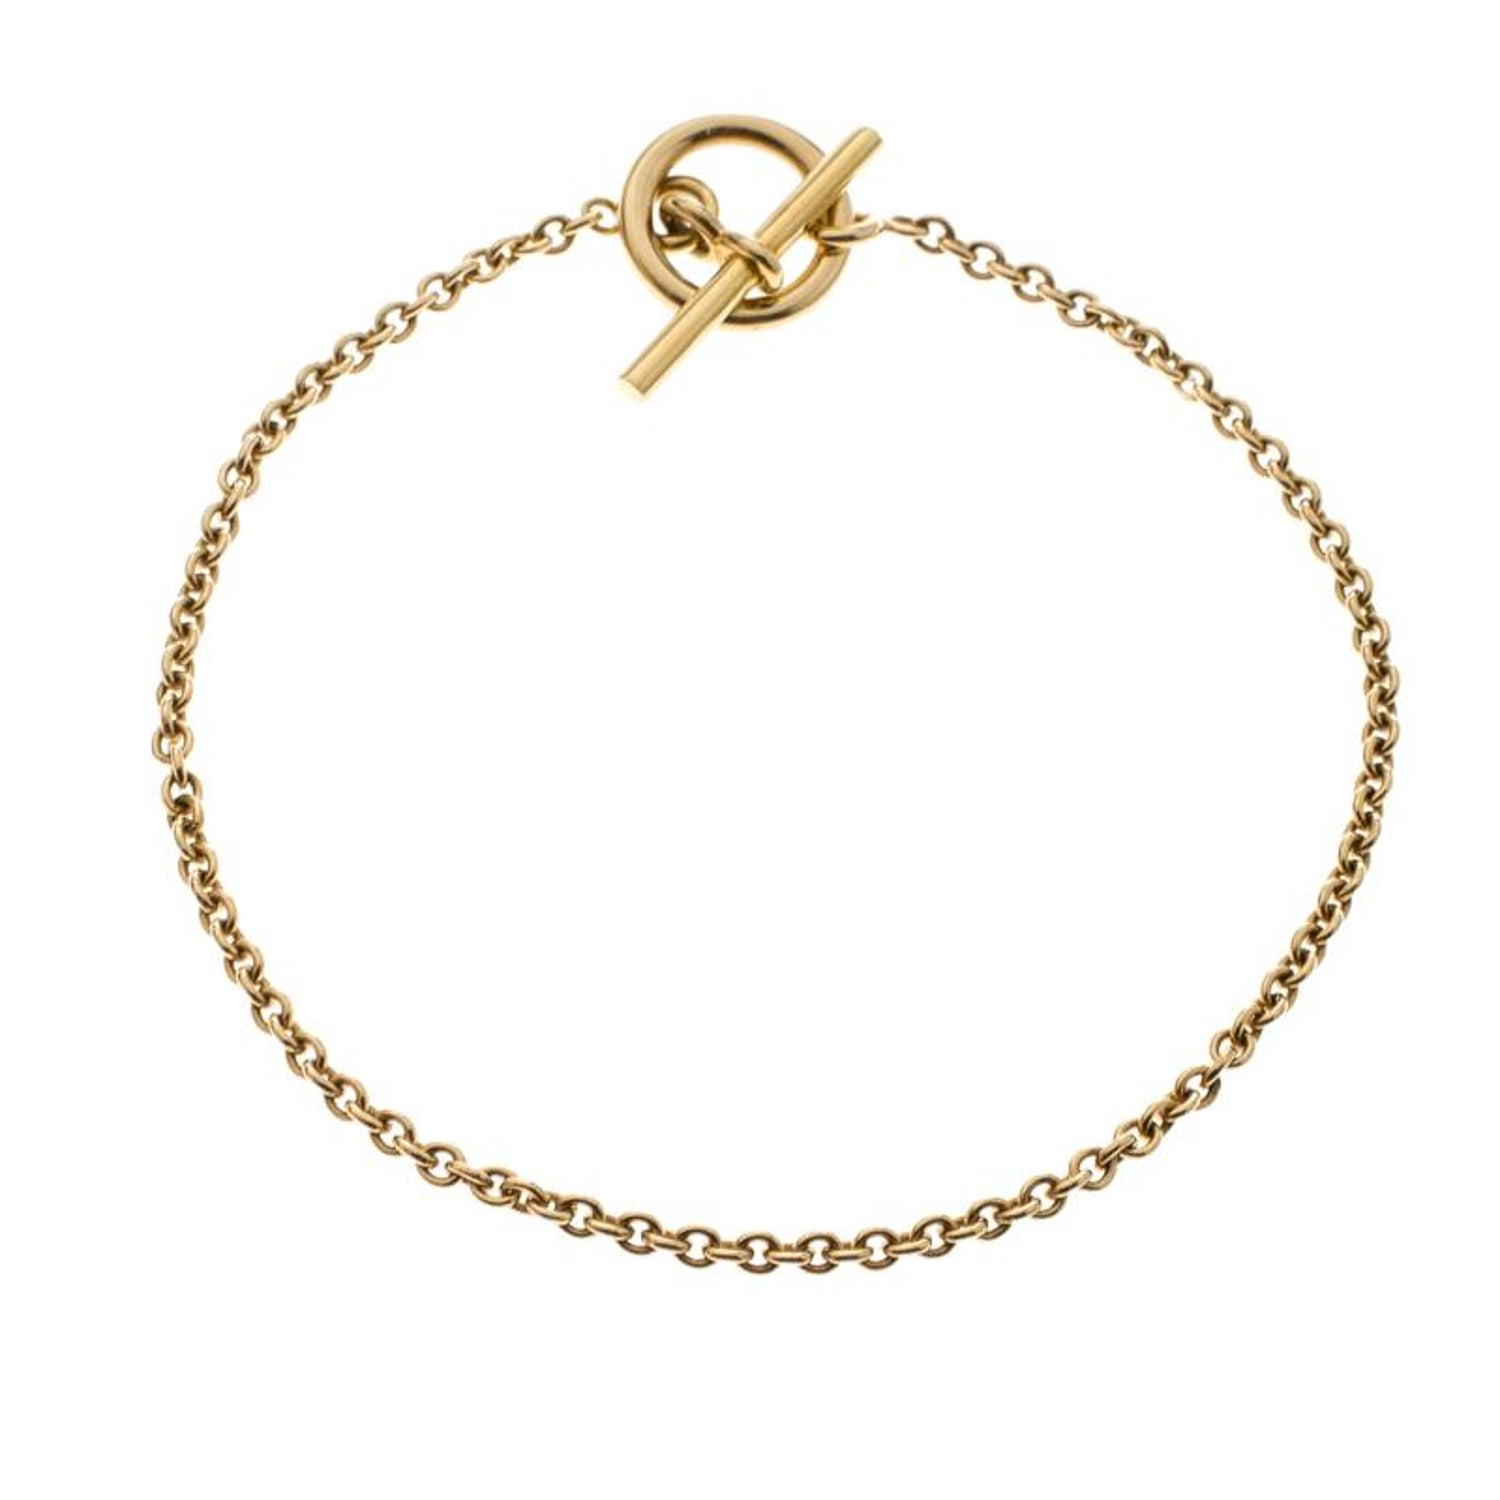 4de23e19d8361e Hermes Chaine d'Ancre Mini 18k Yellow Gold Toggle Bracelet For Sale at  1stdibs